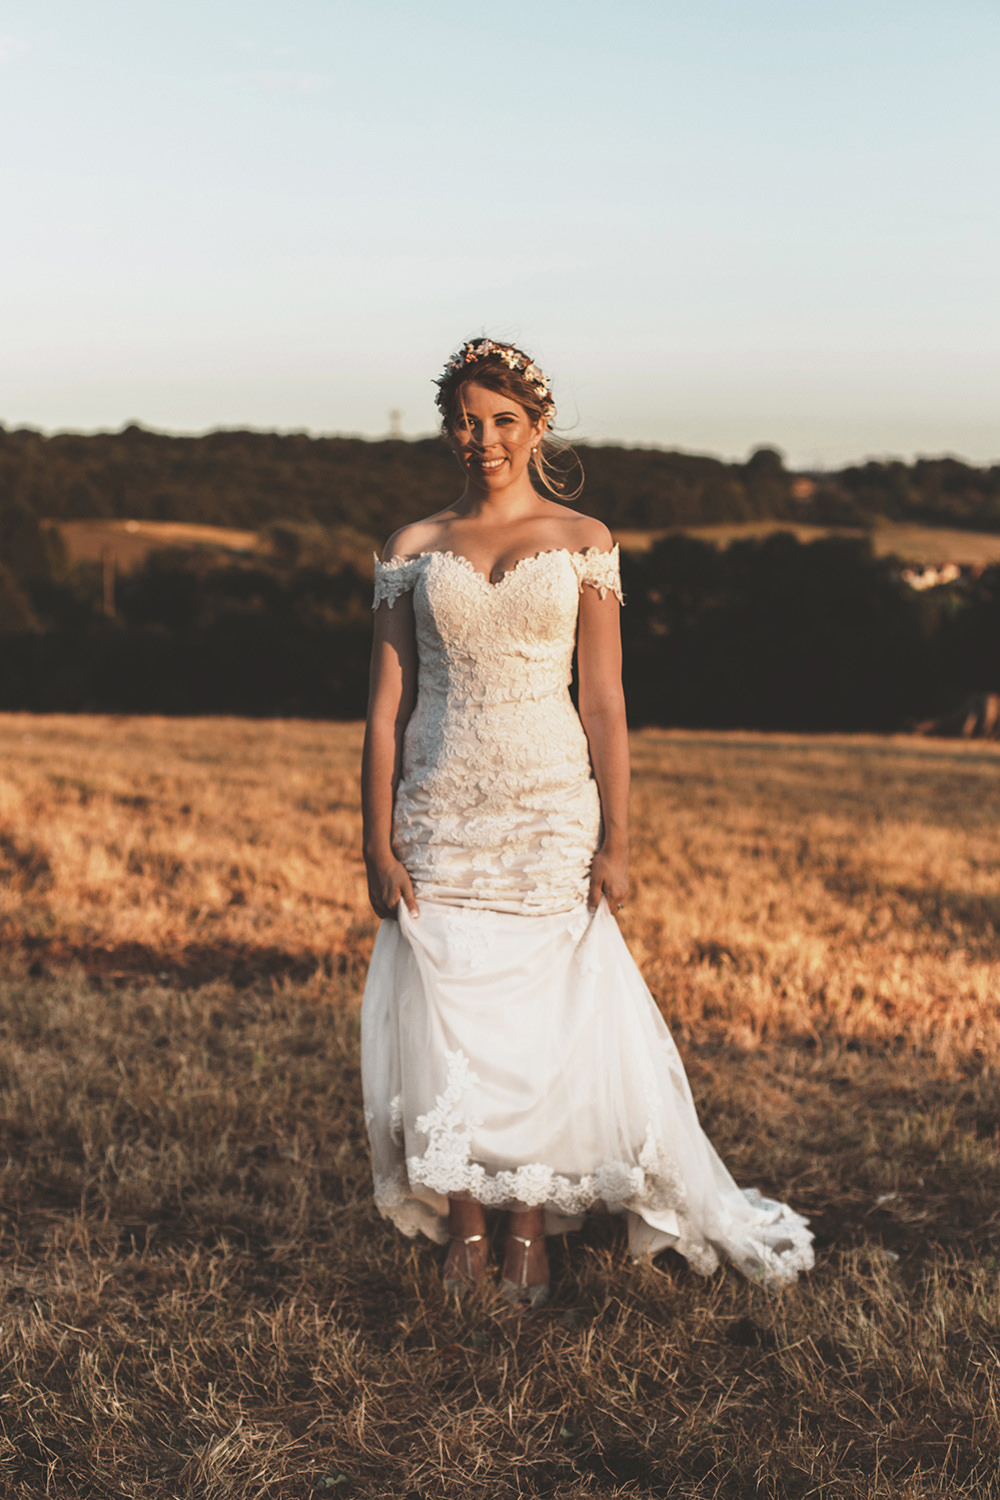 Summer Sunflower Rustic Wedding Masha UnwerthBride Bridal Dress Gown Lace Fit Flare Train Justin Alexander